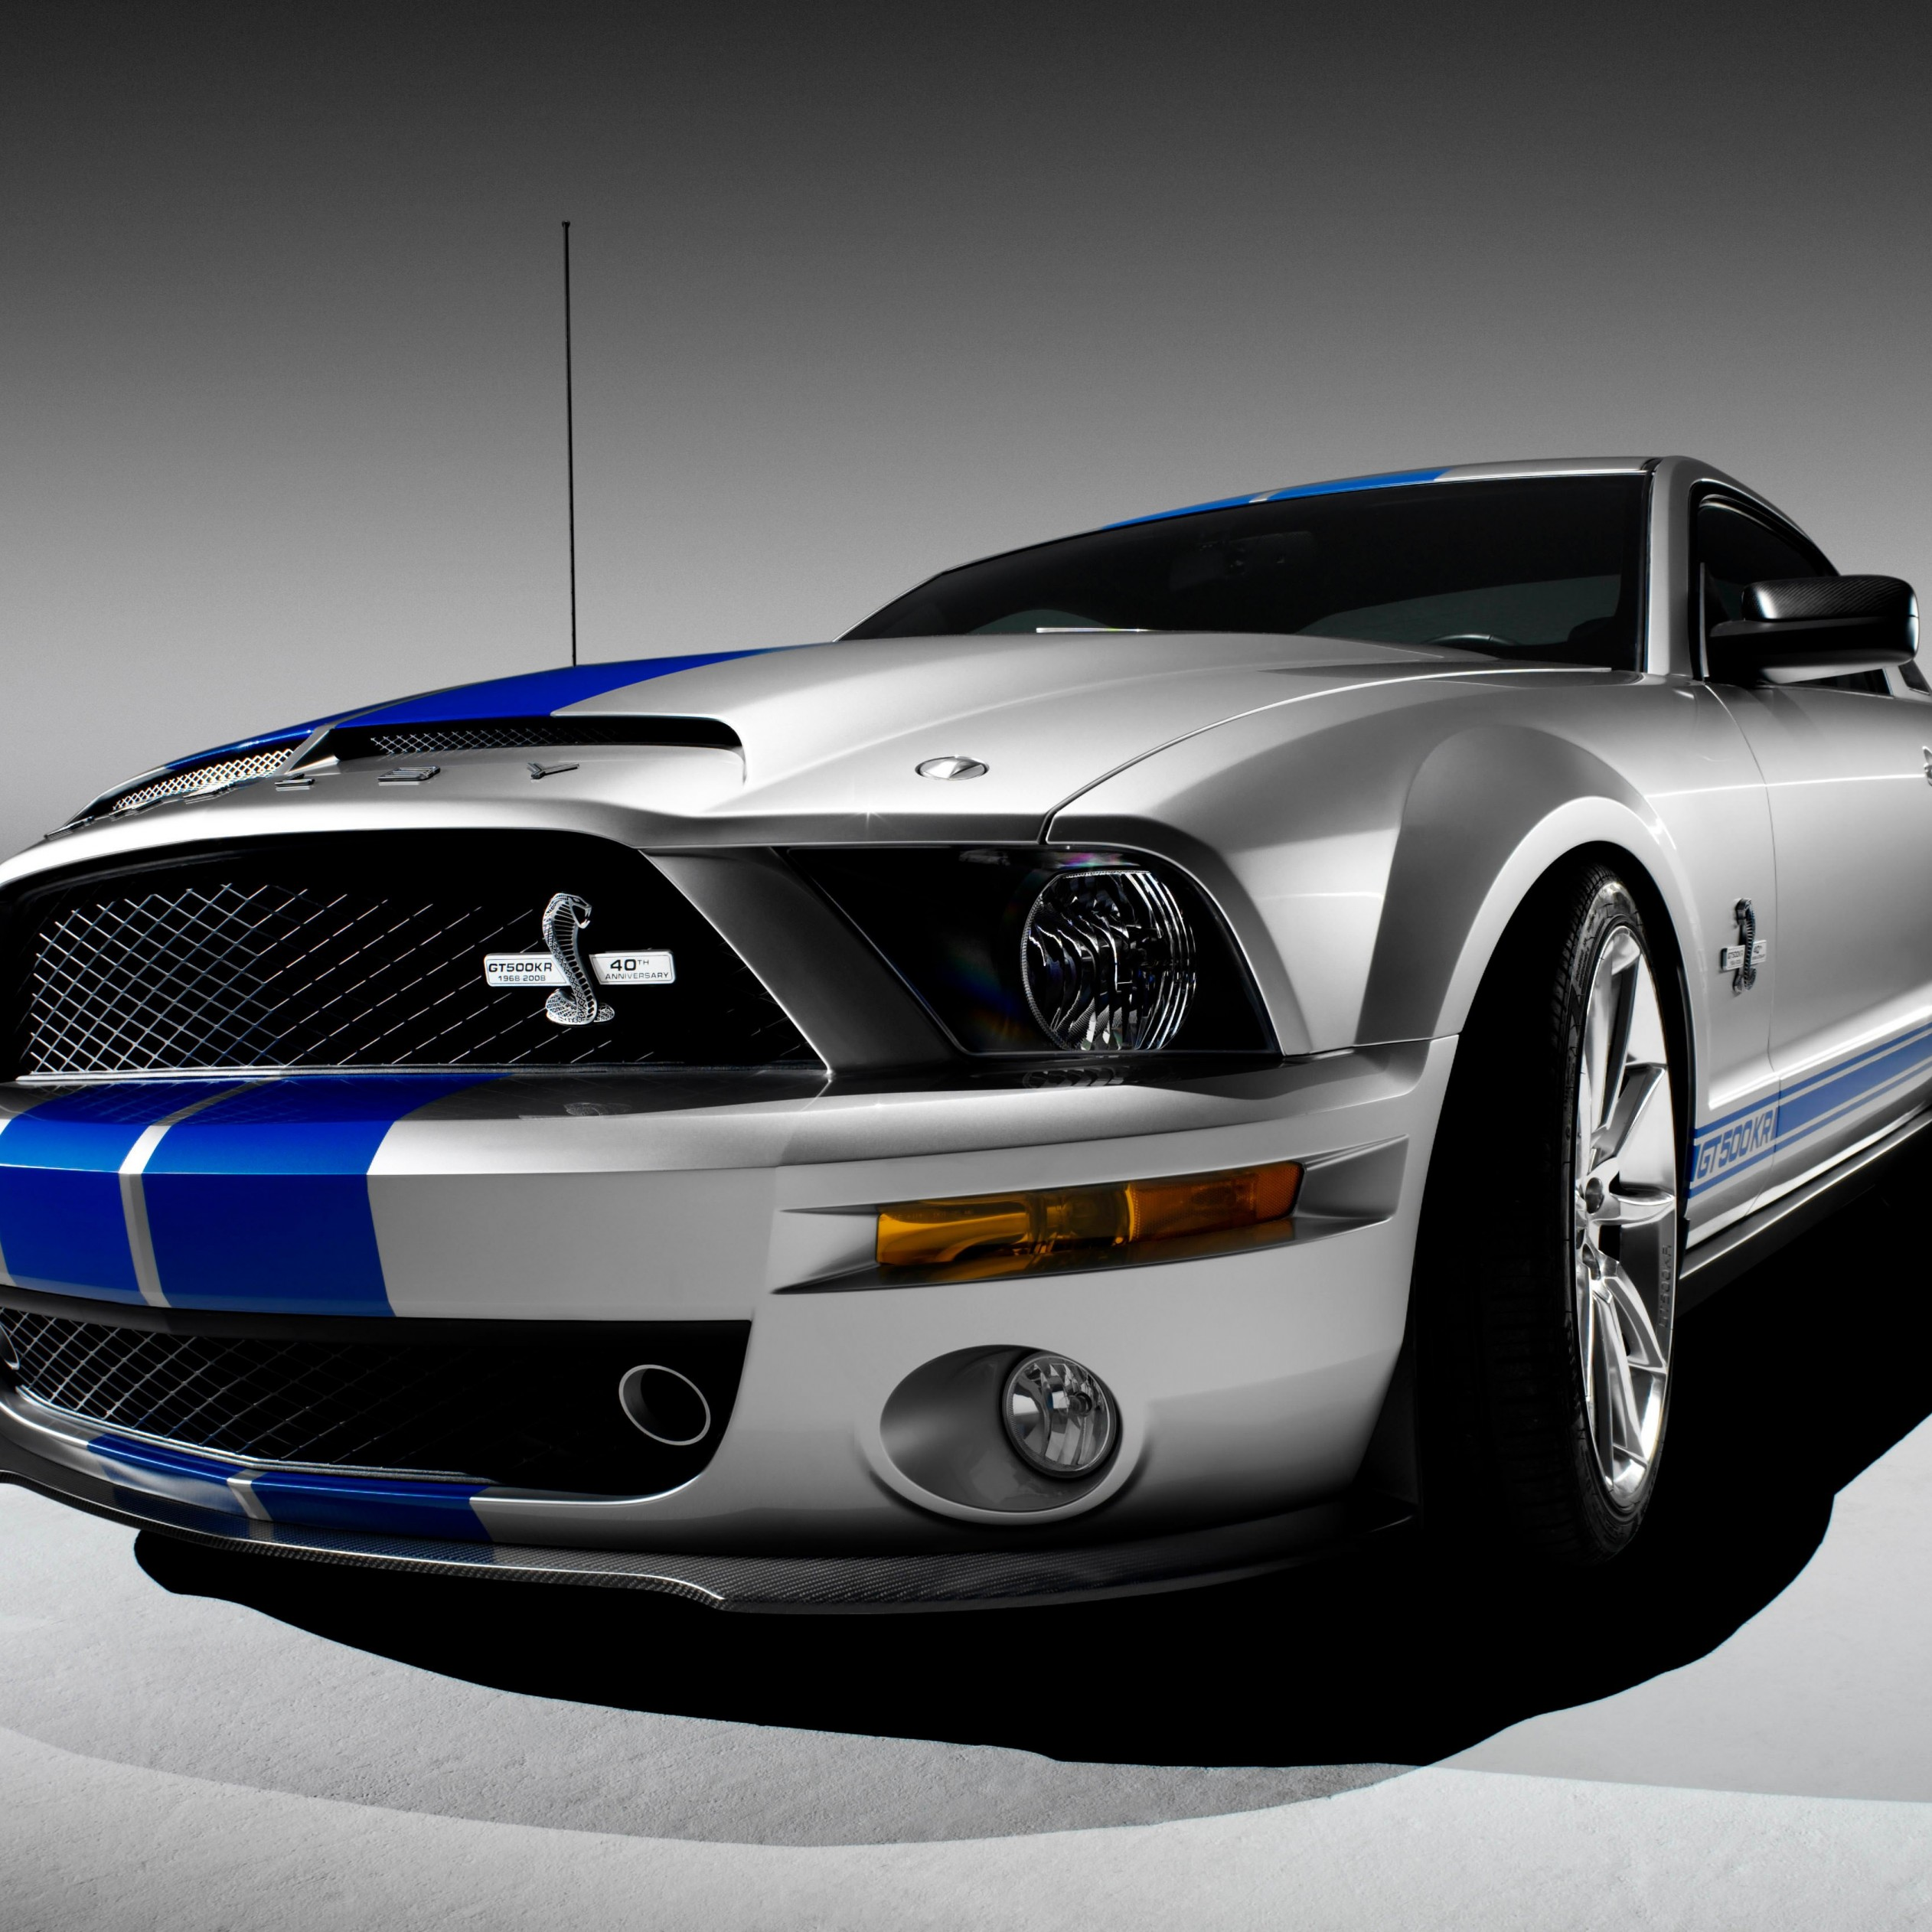 Shelby Mustang GT500KR Wallpaper for Apple iPad 3